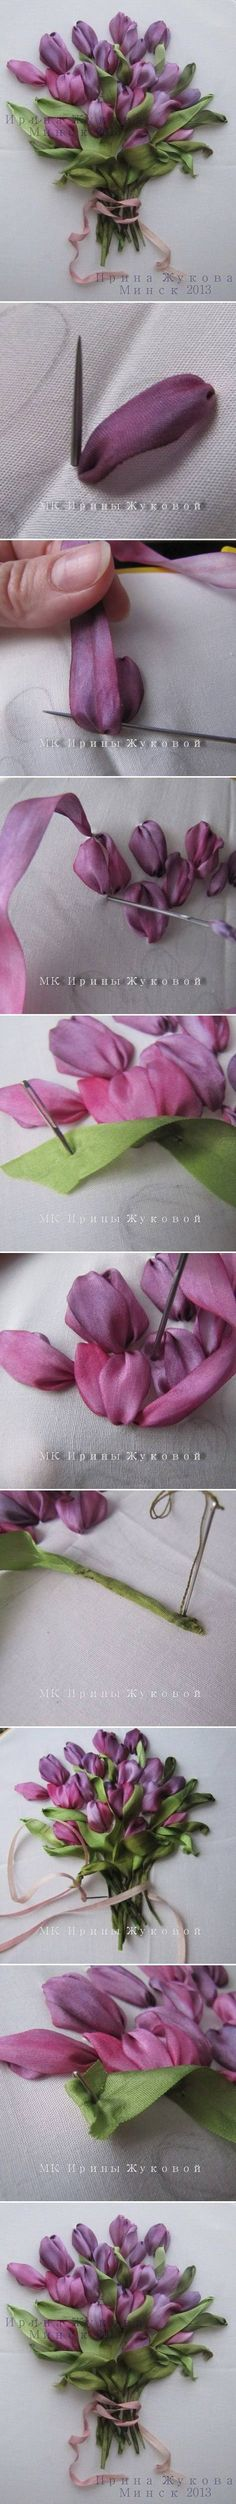 DIY Embroidery Ribbon Flower DIY Projects | UsefulDIY.com: If this works, it's sensational. If not, it would still be a pretty funny pinterest-fail.